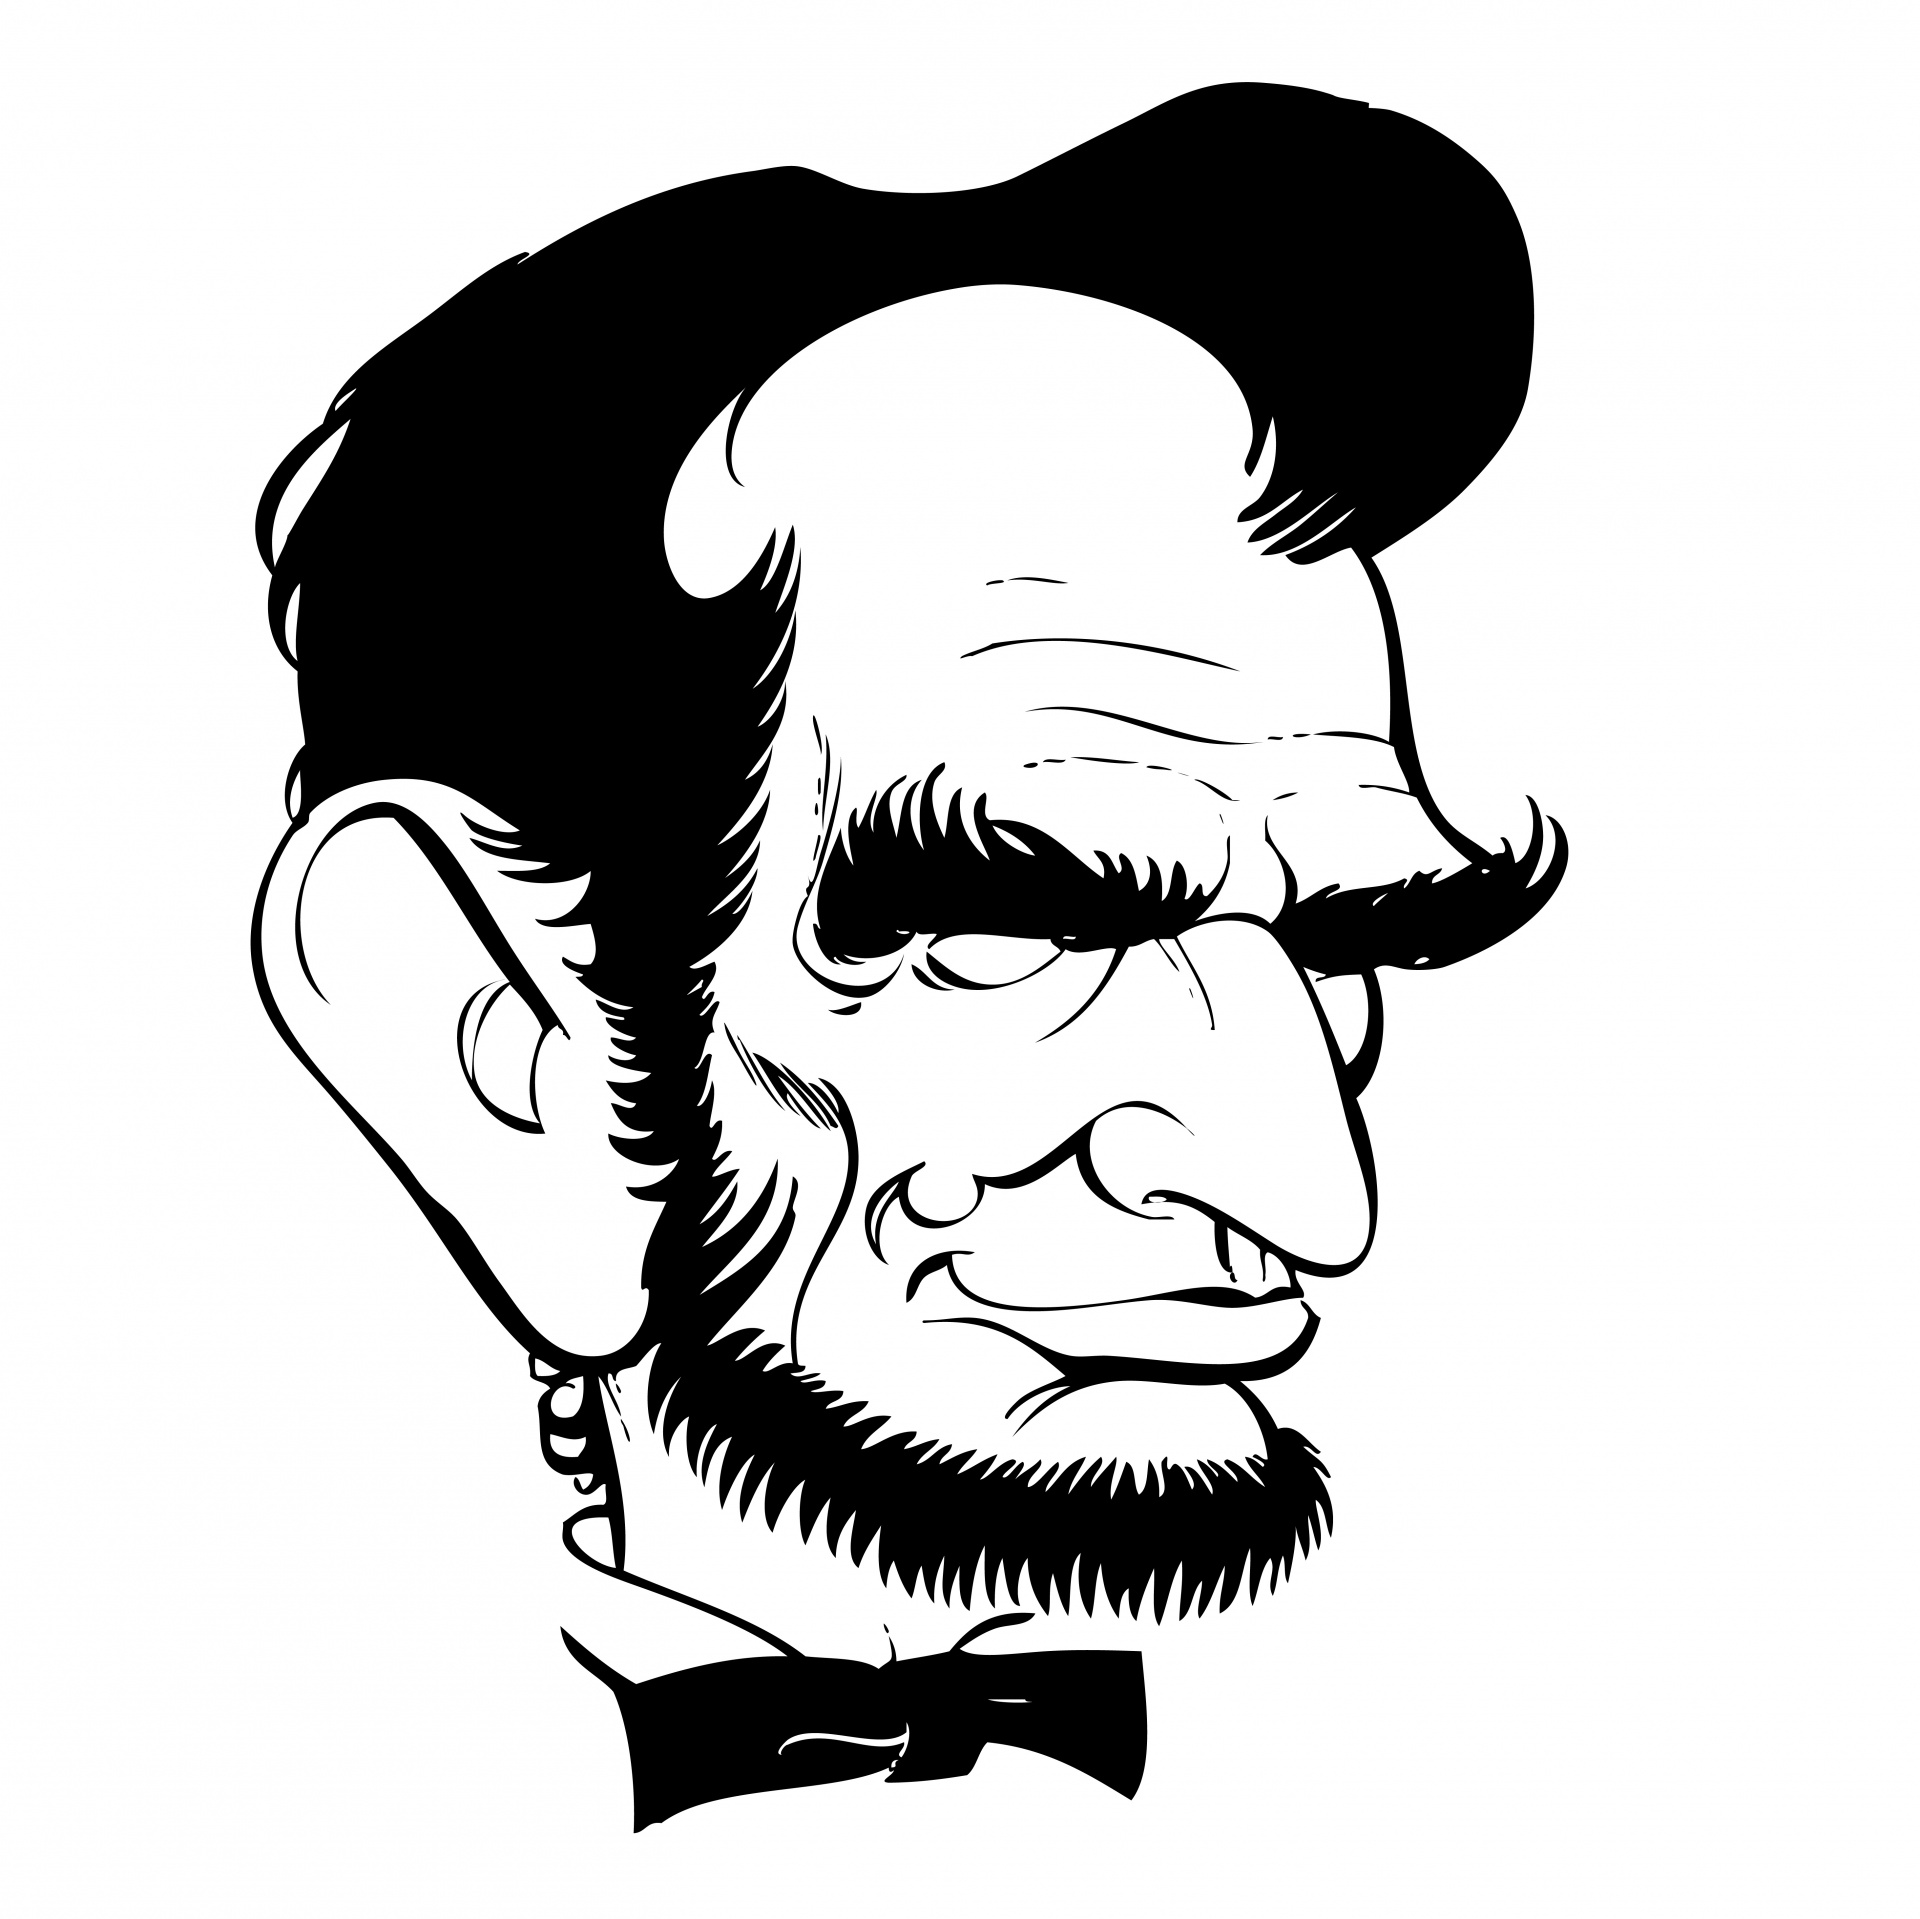 Abraham Lincoln Caricature Free Stock Photo